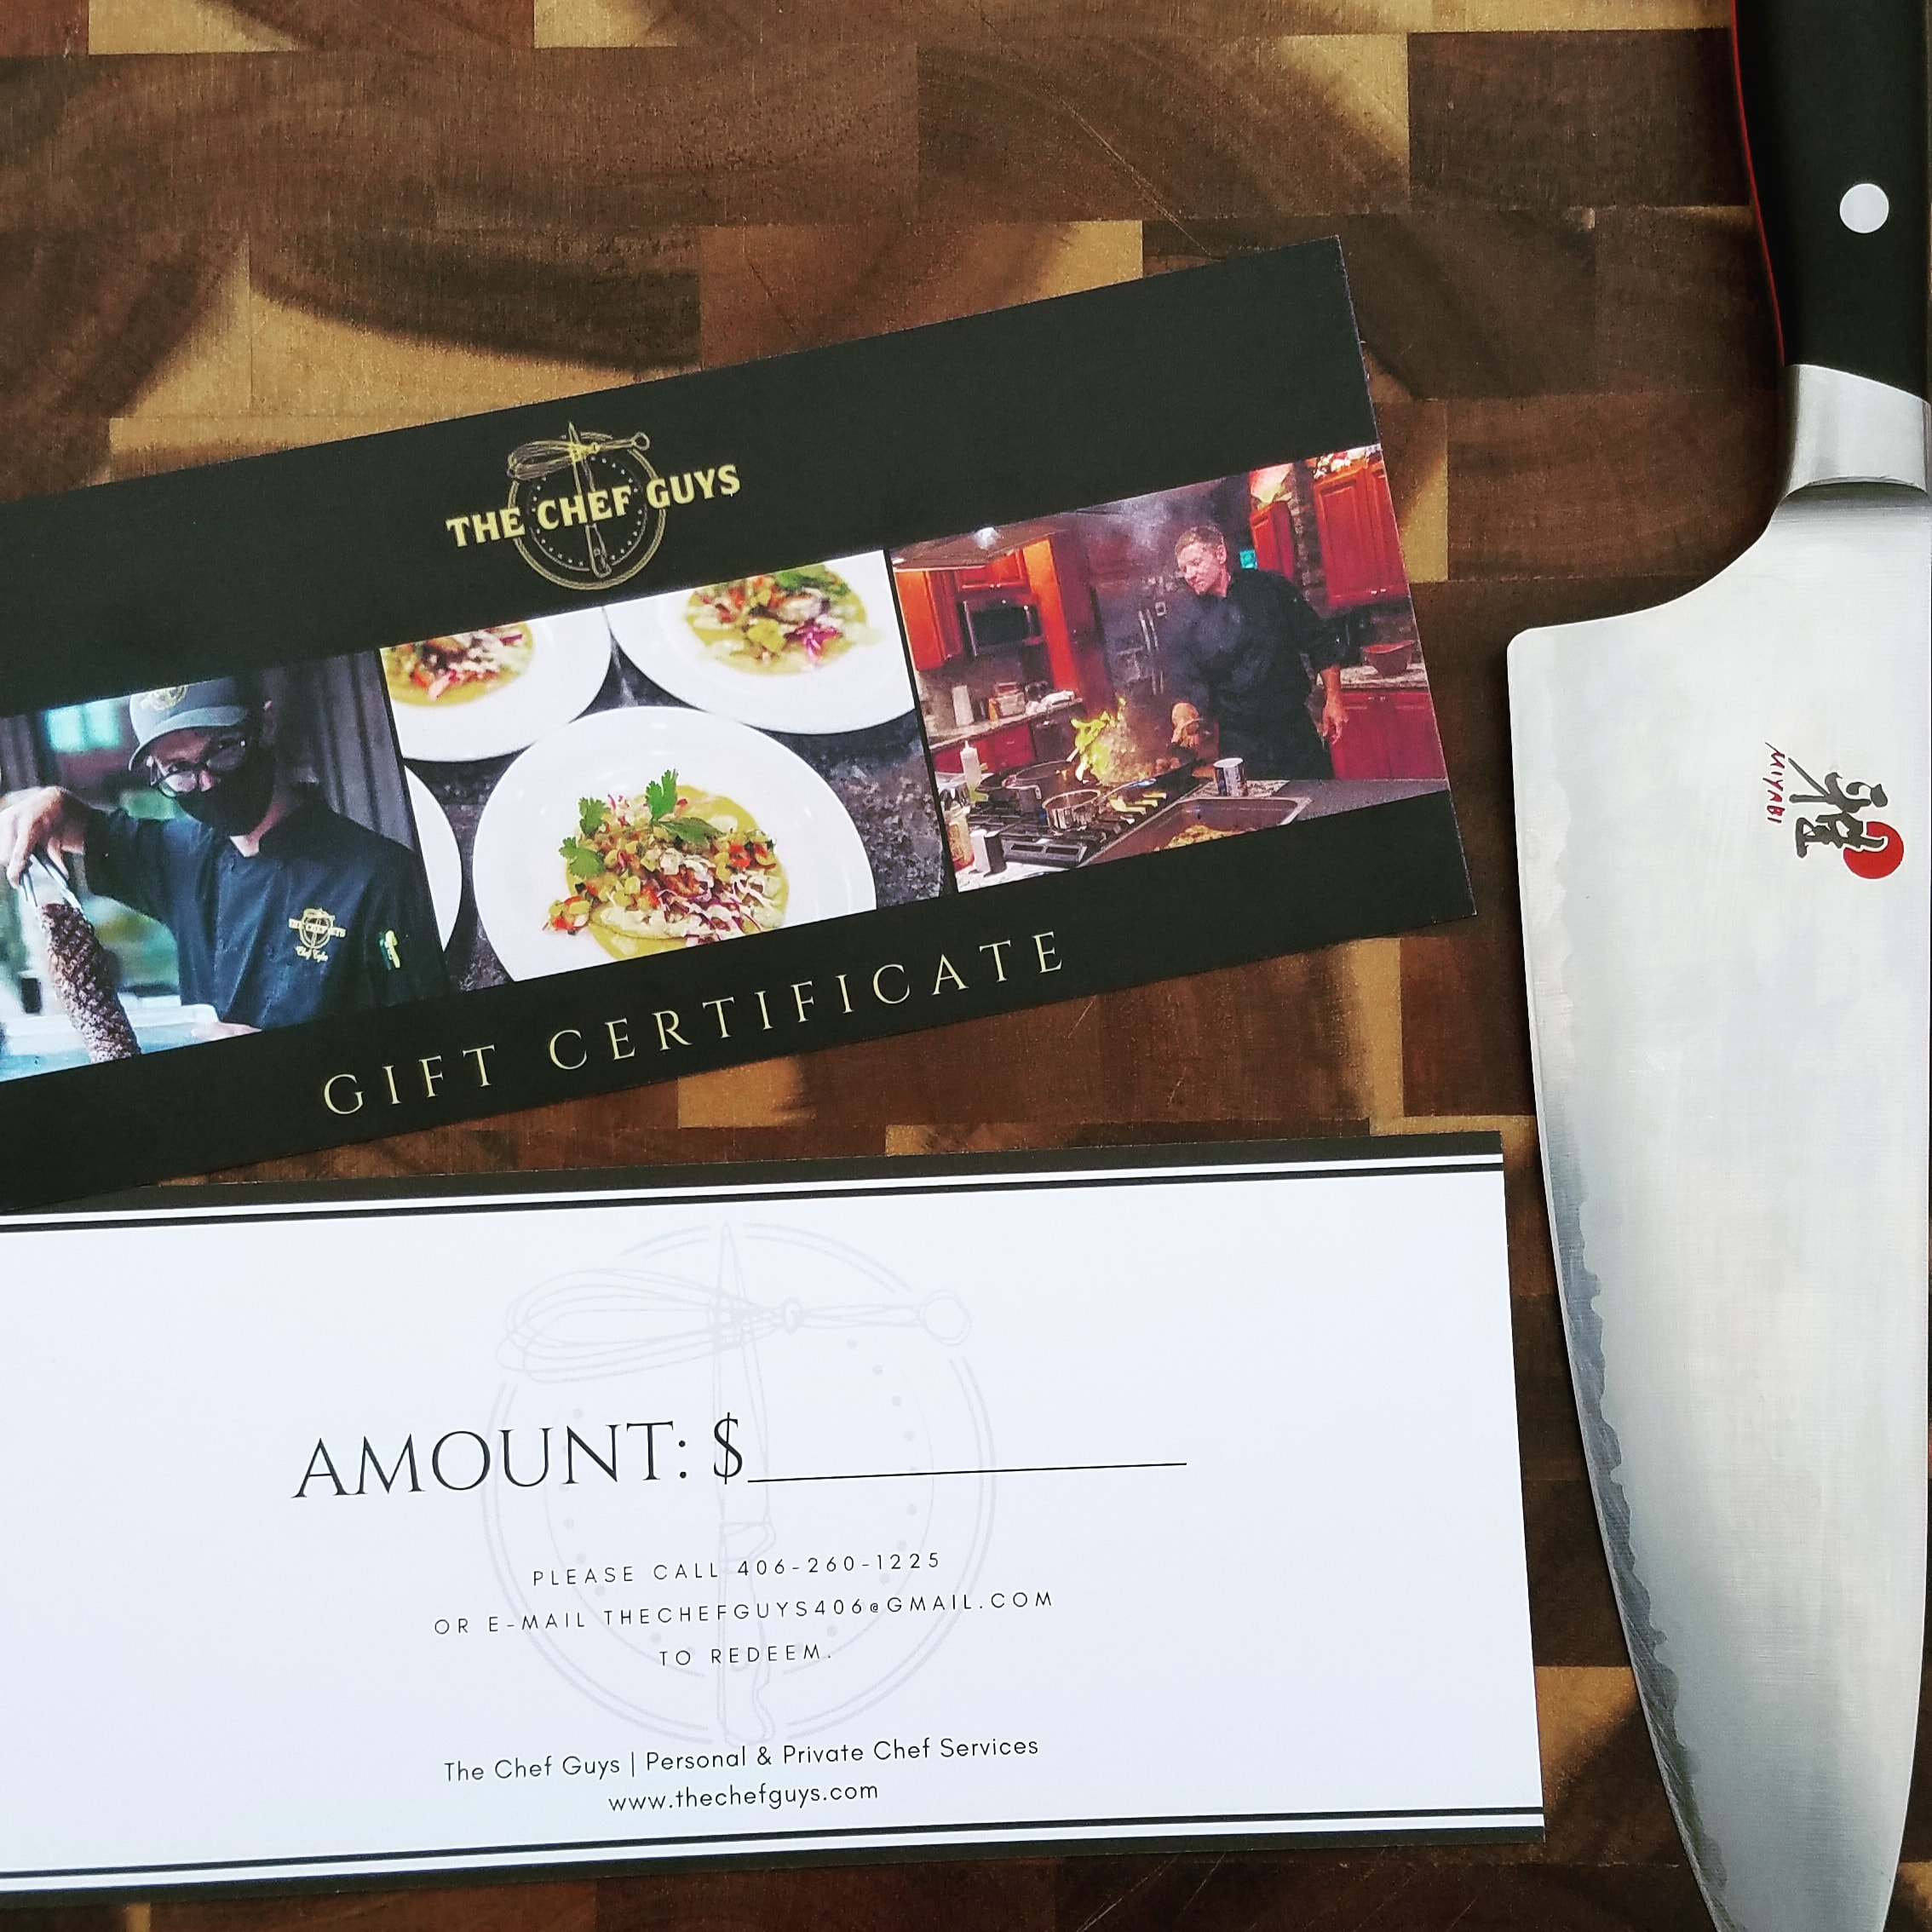 The Chef Guys Catering Gift Certificate